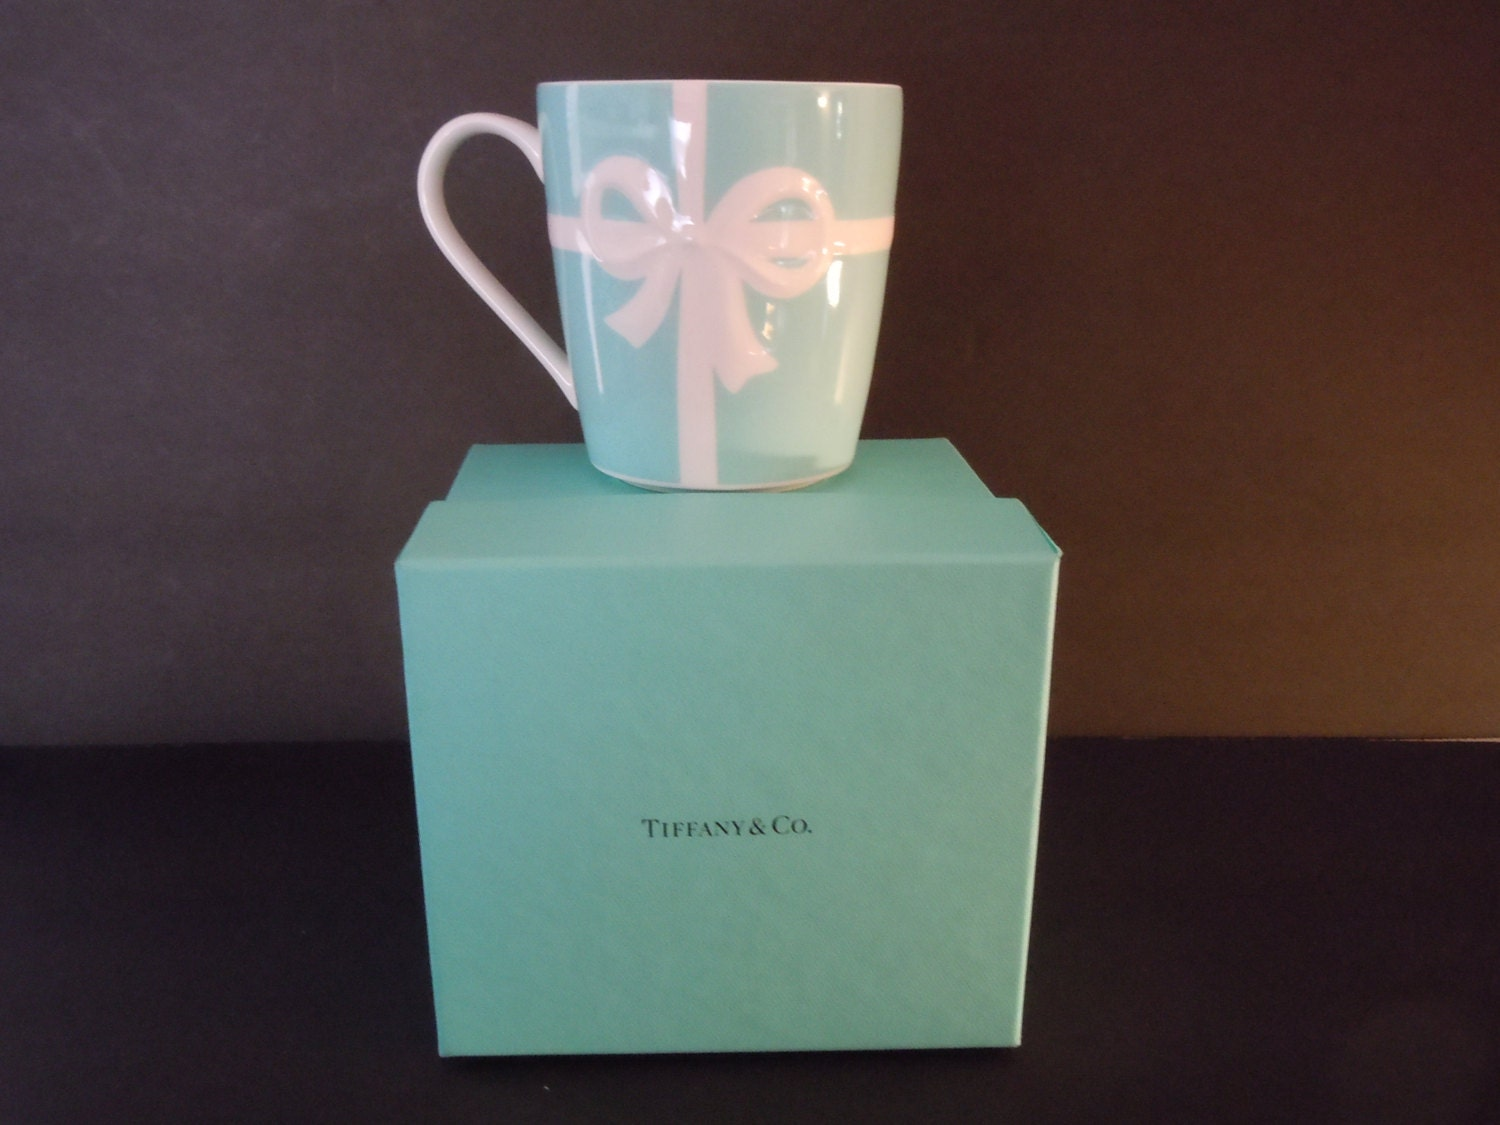 ON SALE Tiffany and Co Blue Bow Box MUG Double Ribbon New in